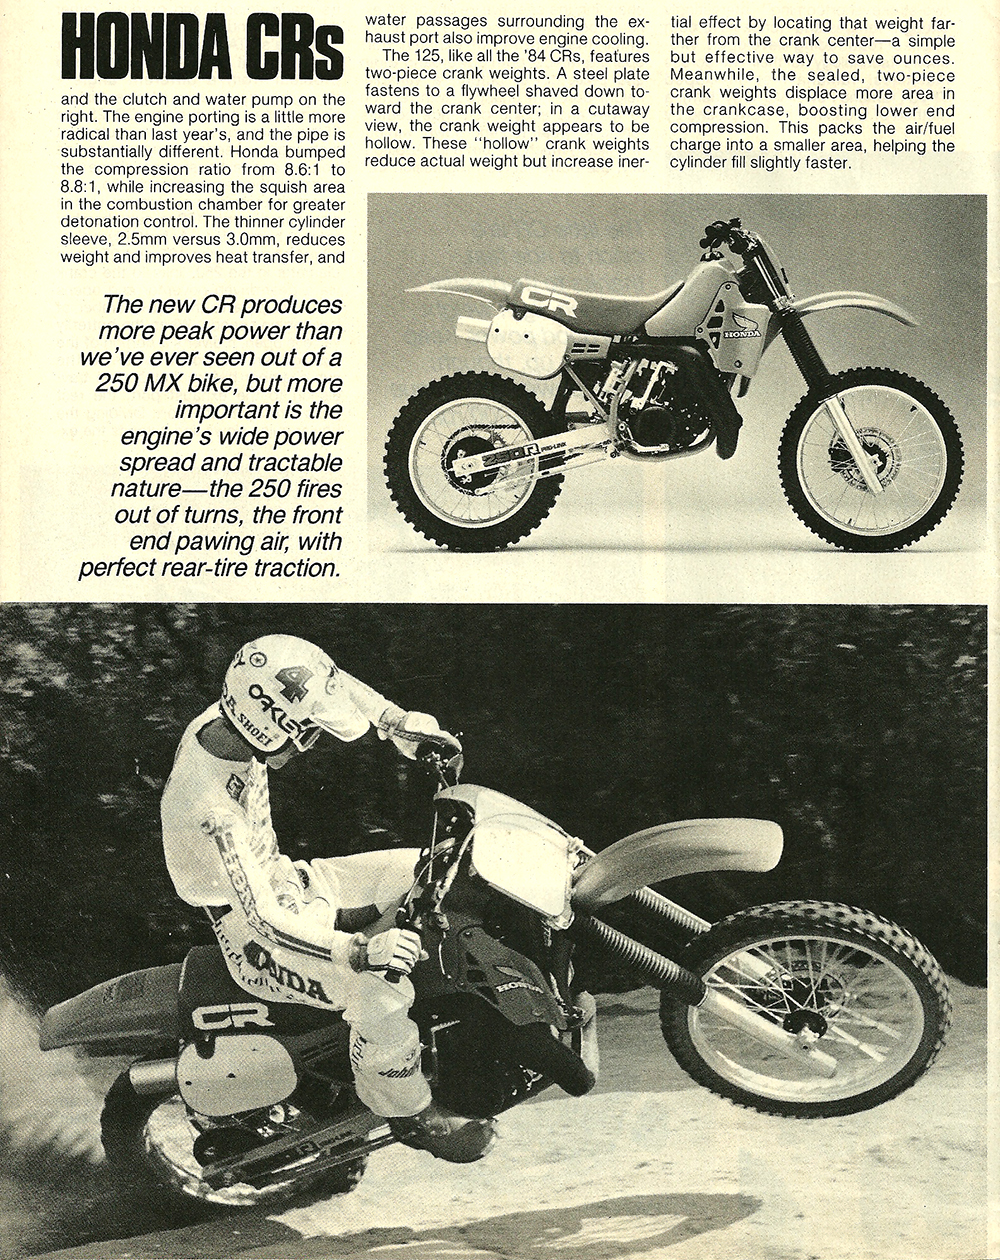 1984 Honda CR 125 250 500 road test 05.jpg